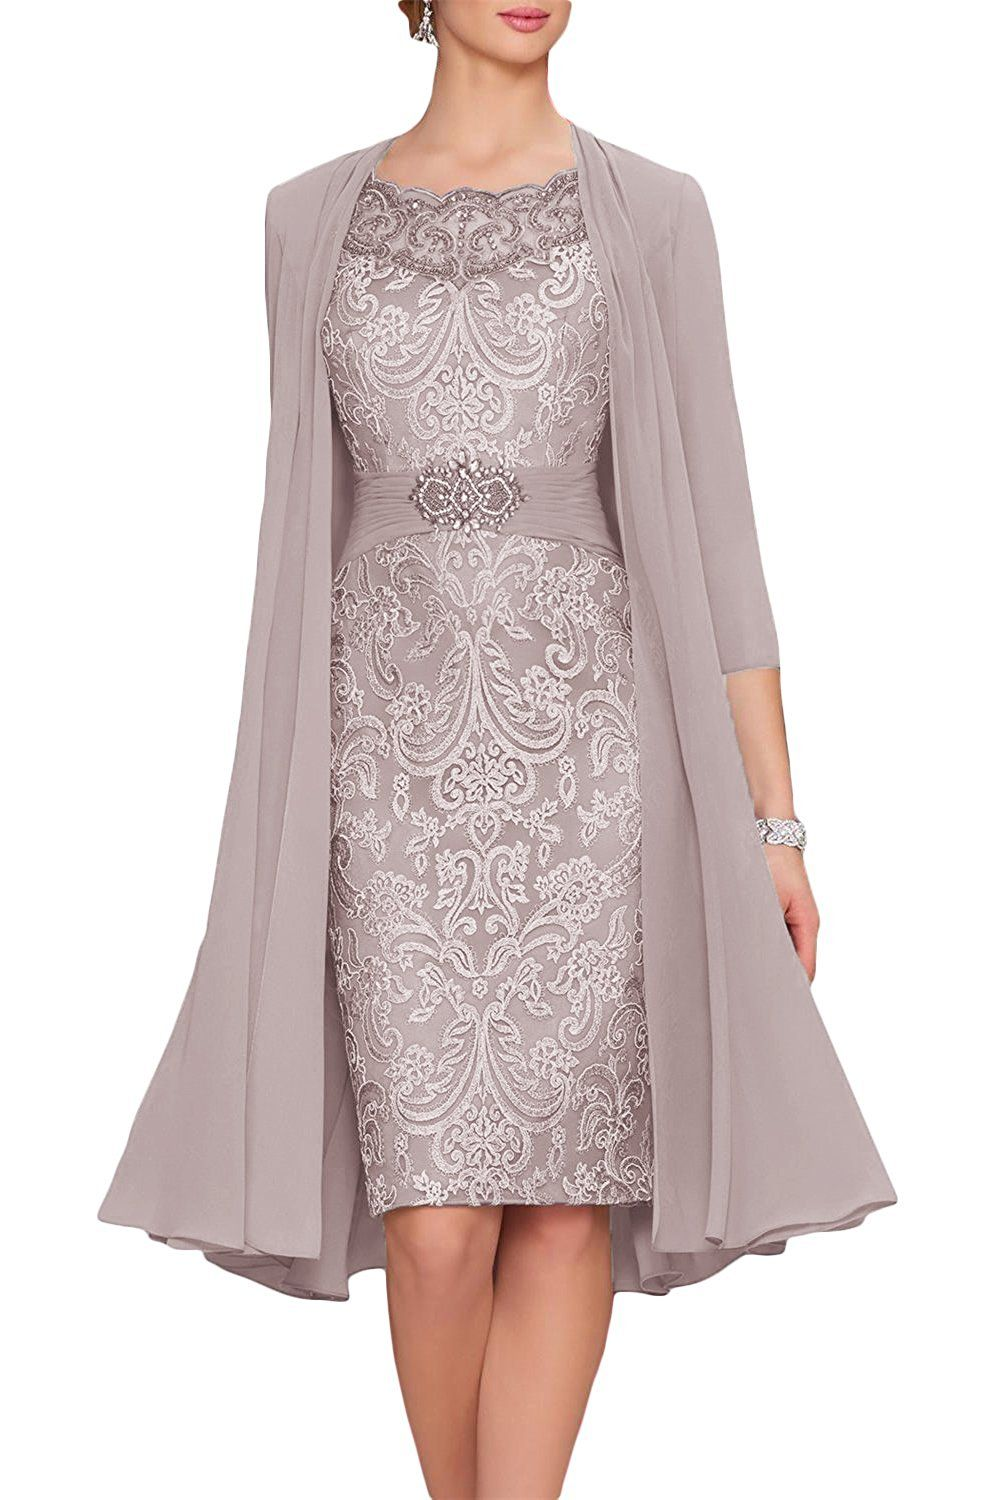 Newdeve Chiffon Mother Of The Bride Dresses Tea Length Two Pieces With Jacket At Amazon Womens